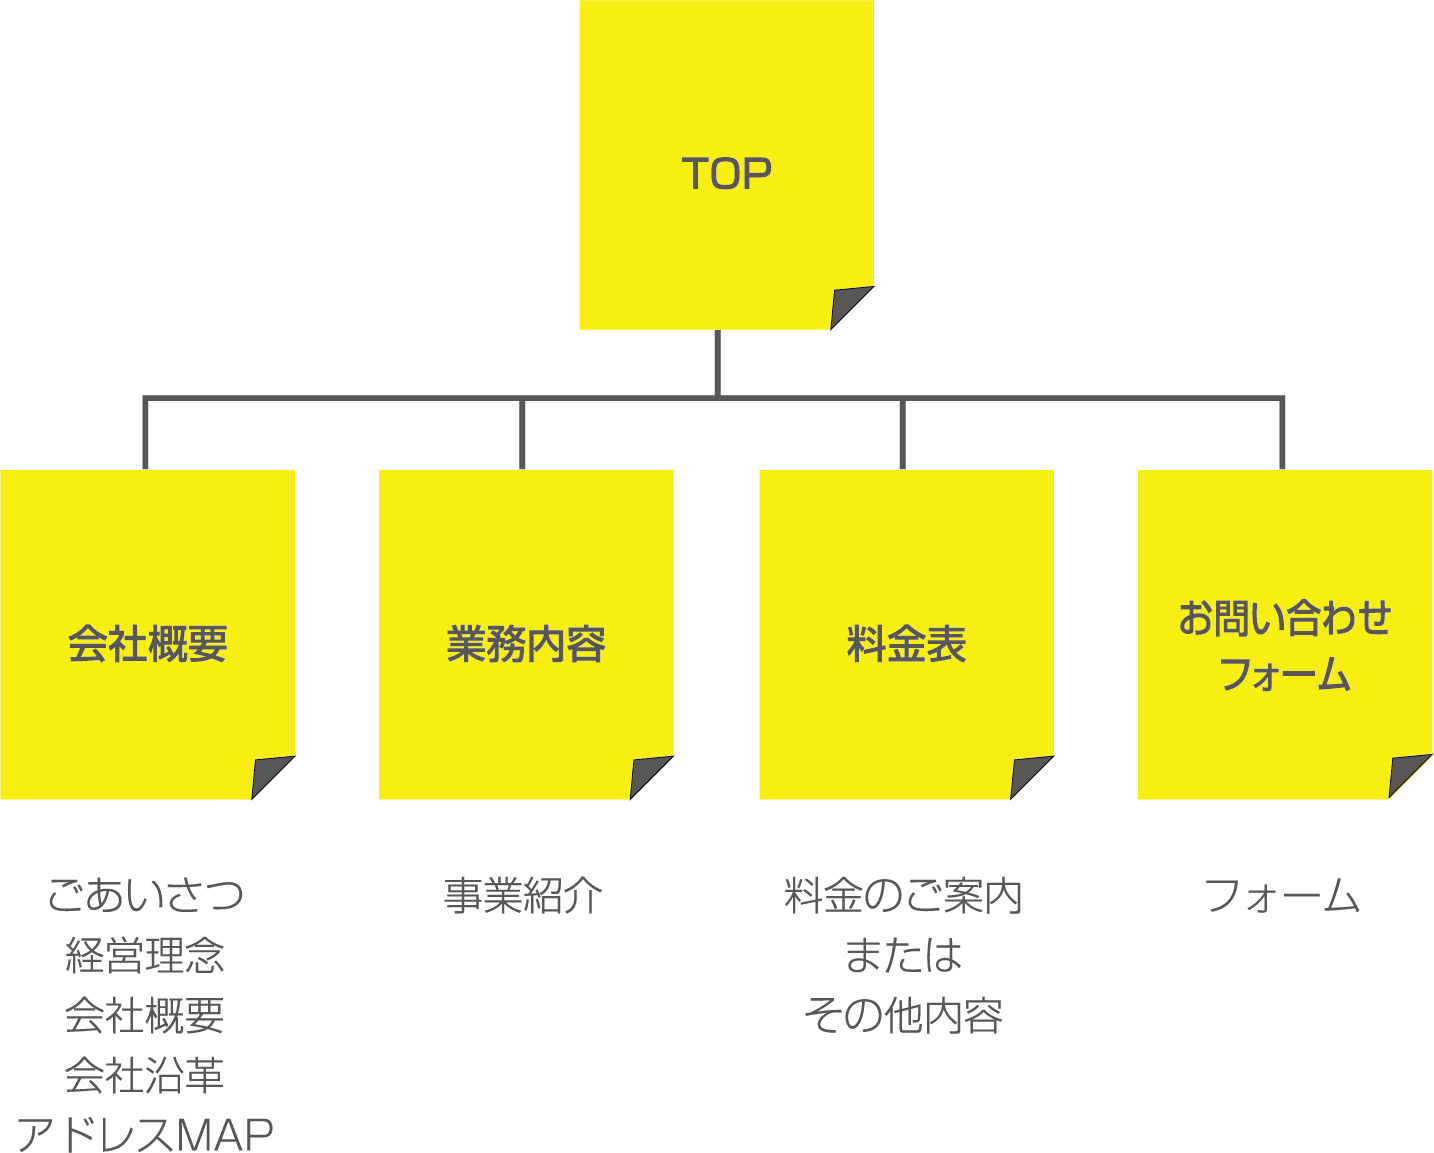 SIMPLE Packのページ構成